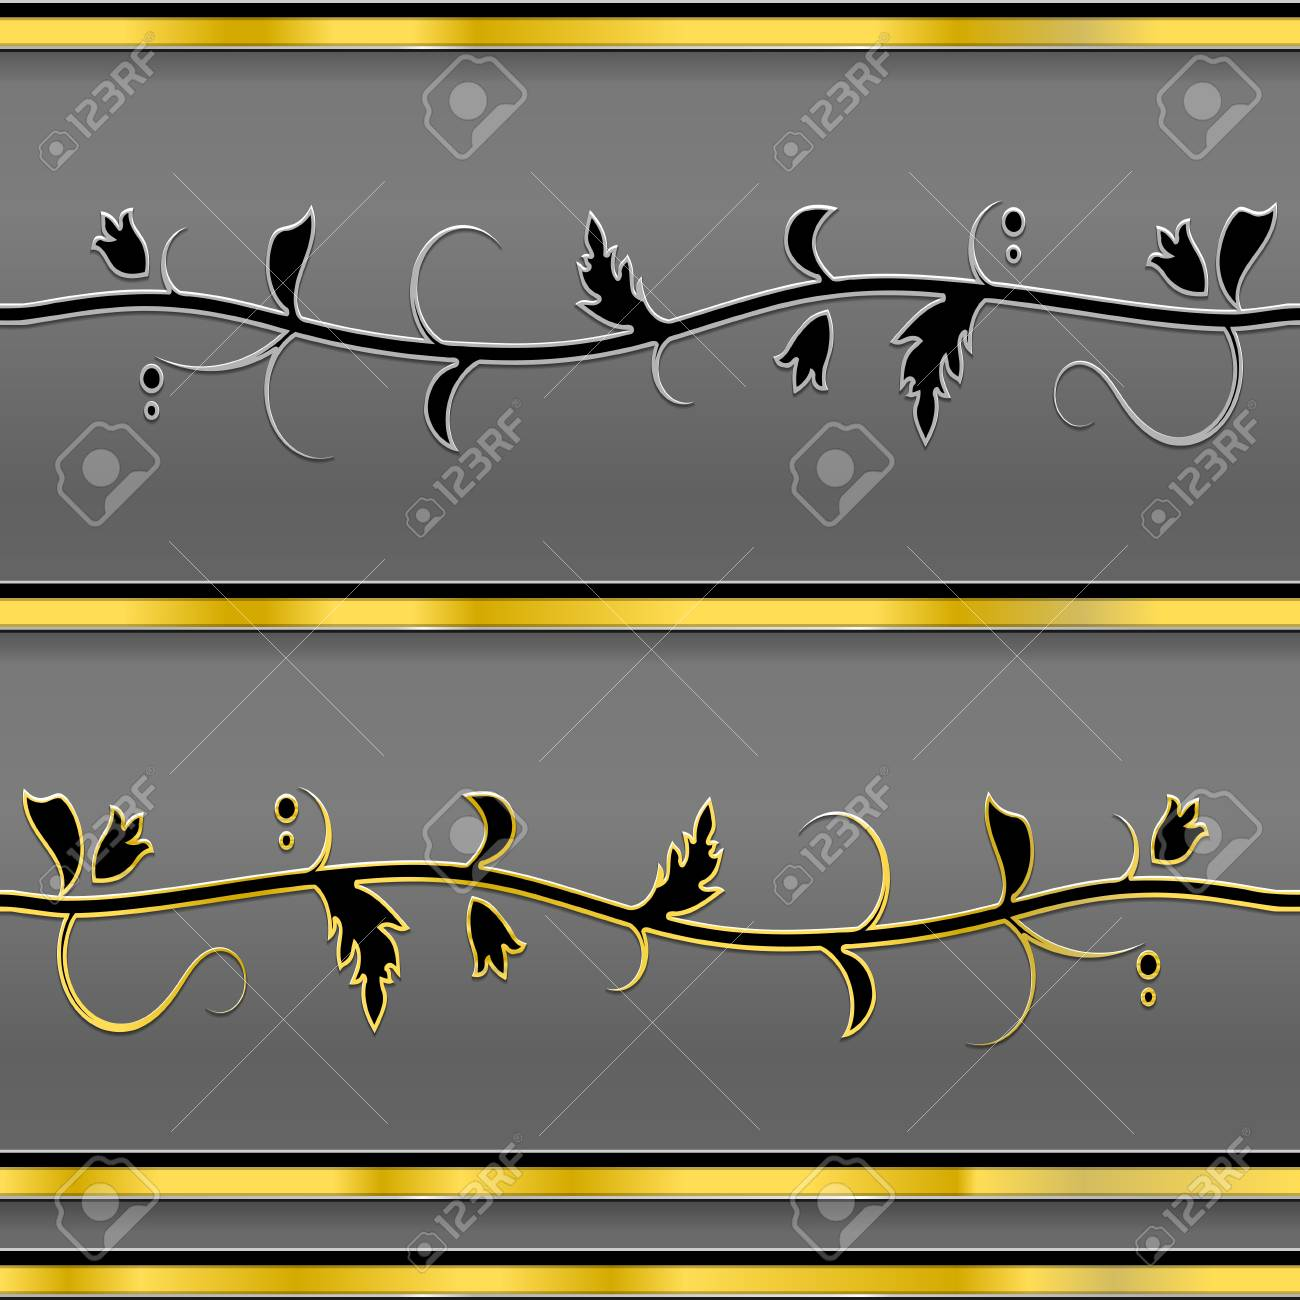 Vector Seamless Decor Border with metal leaves Stock Vector - 12957621